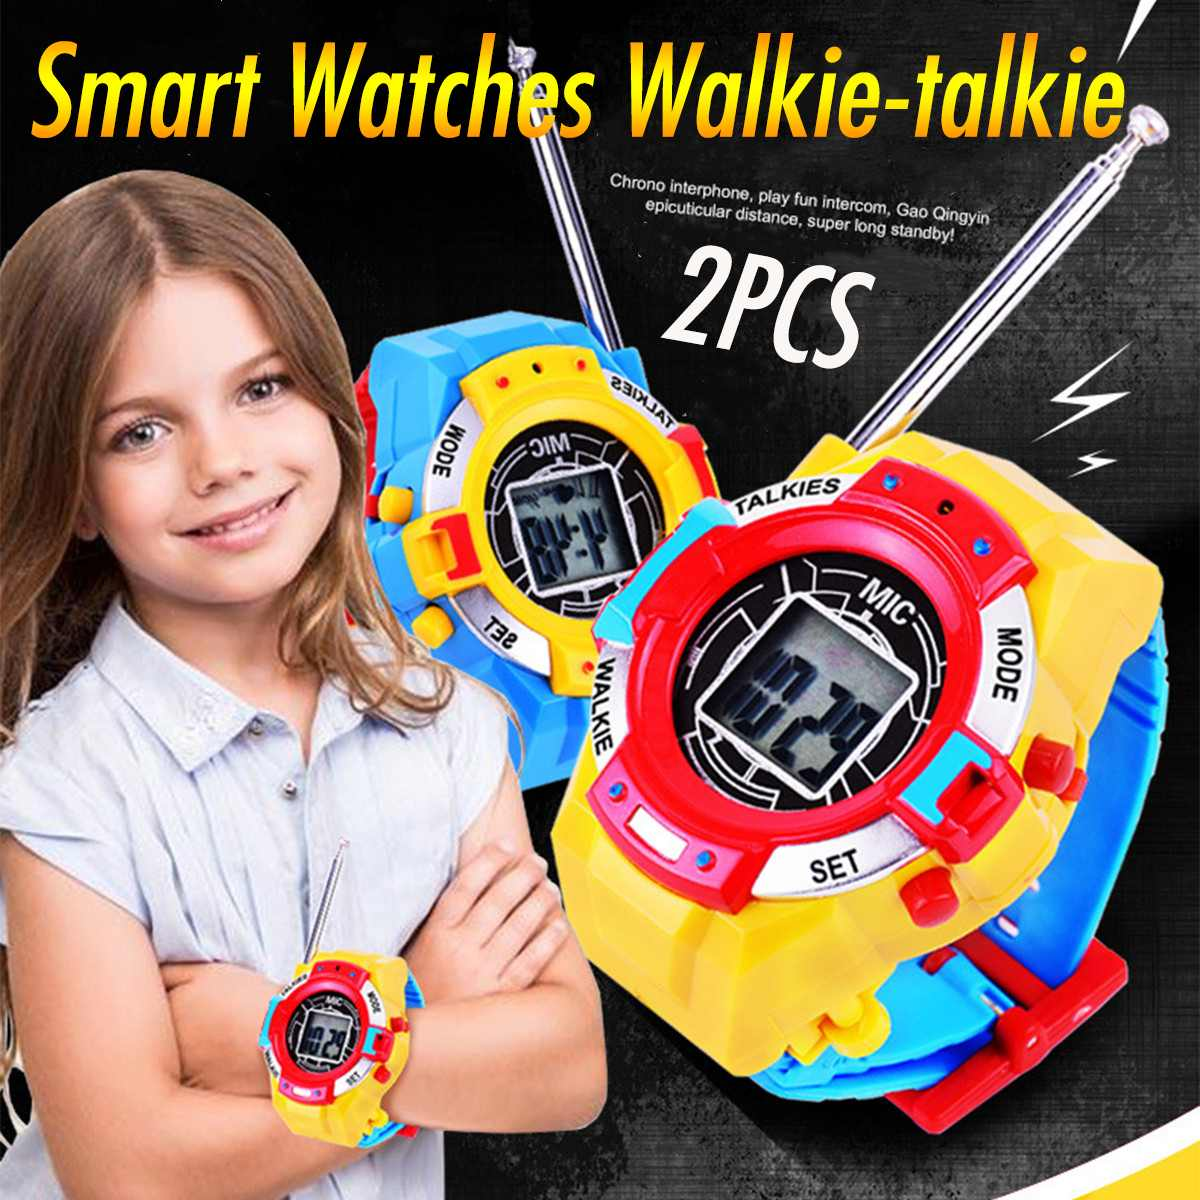 2Pcs Smart Watches Walkie Talkies With Time Display Function Watch Kids Watches Two-way Radios Interphone Clock Gift Hot Sale